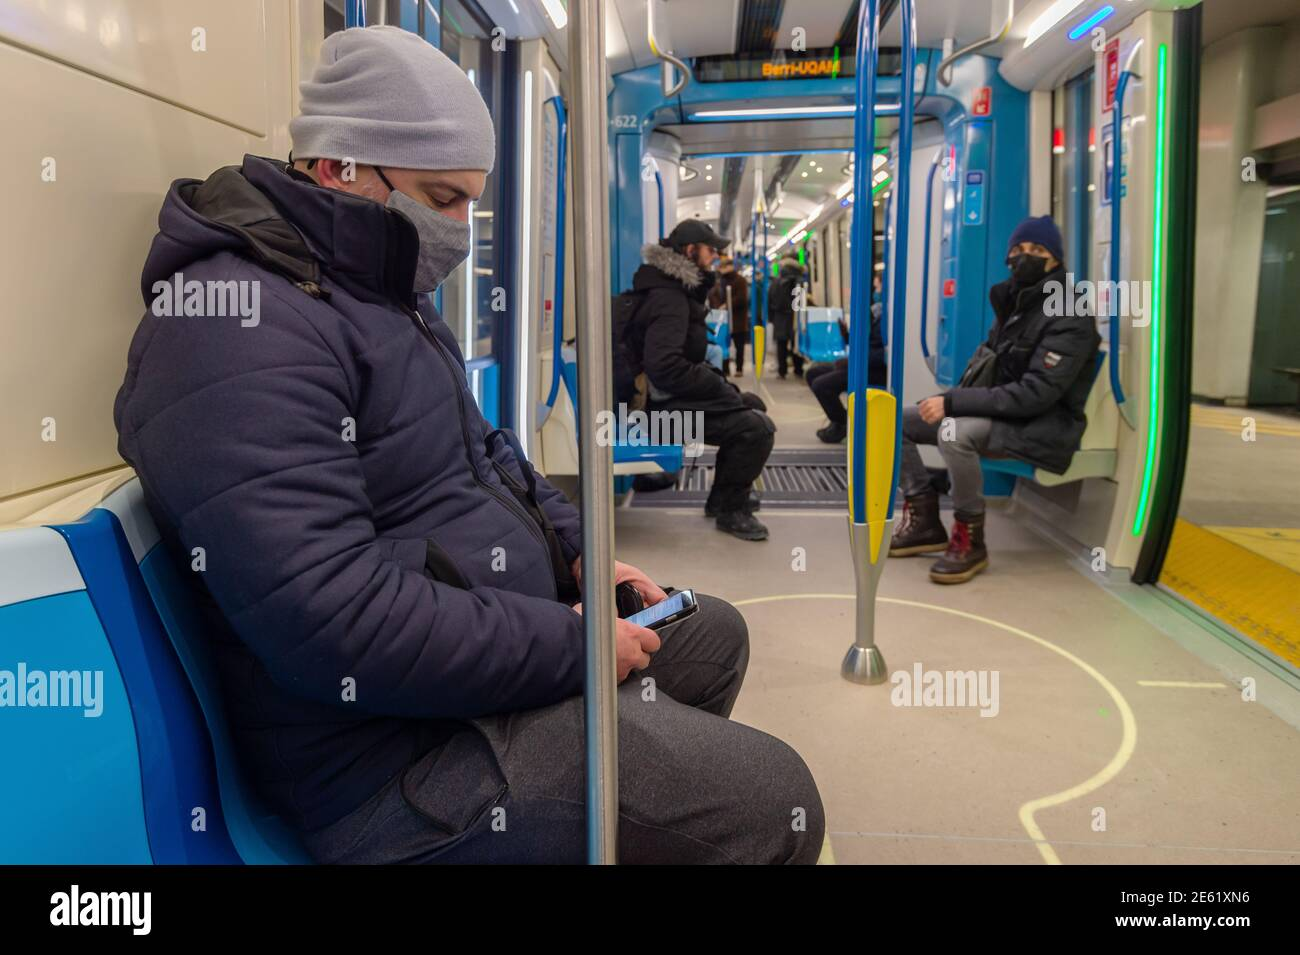 Montreal, CA - 24 January 2021: Passenger sitting in subway train, wearing face mask to protect from Covid-19 Stock Photo